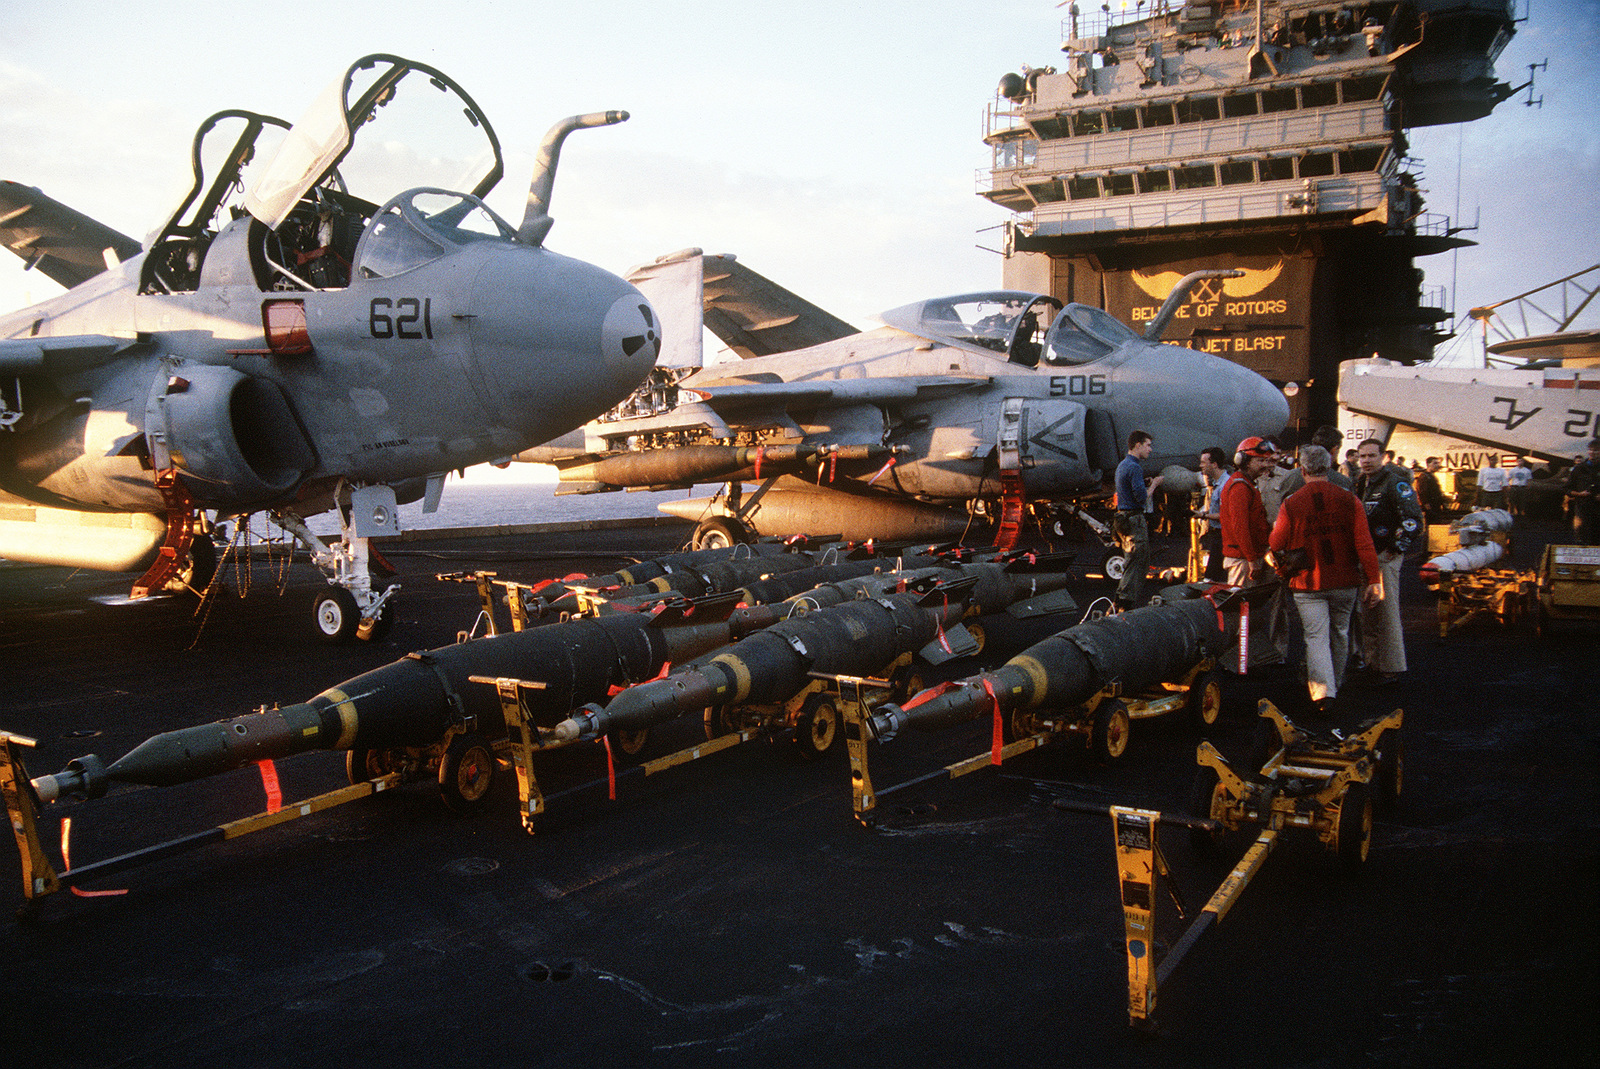 Laser-guided bombs line the flight deck of the aircraft carrier USS JOHN F. KENNEDY (CV-67) in preparation for air strikes against Iraq during Operation Desert Storm. The A-6E Intruder aircraft in the background is armed with laser-guided bombs